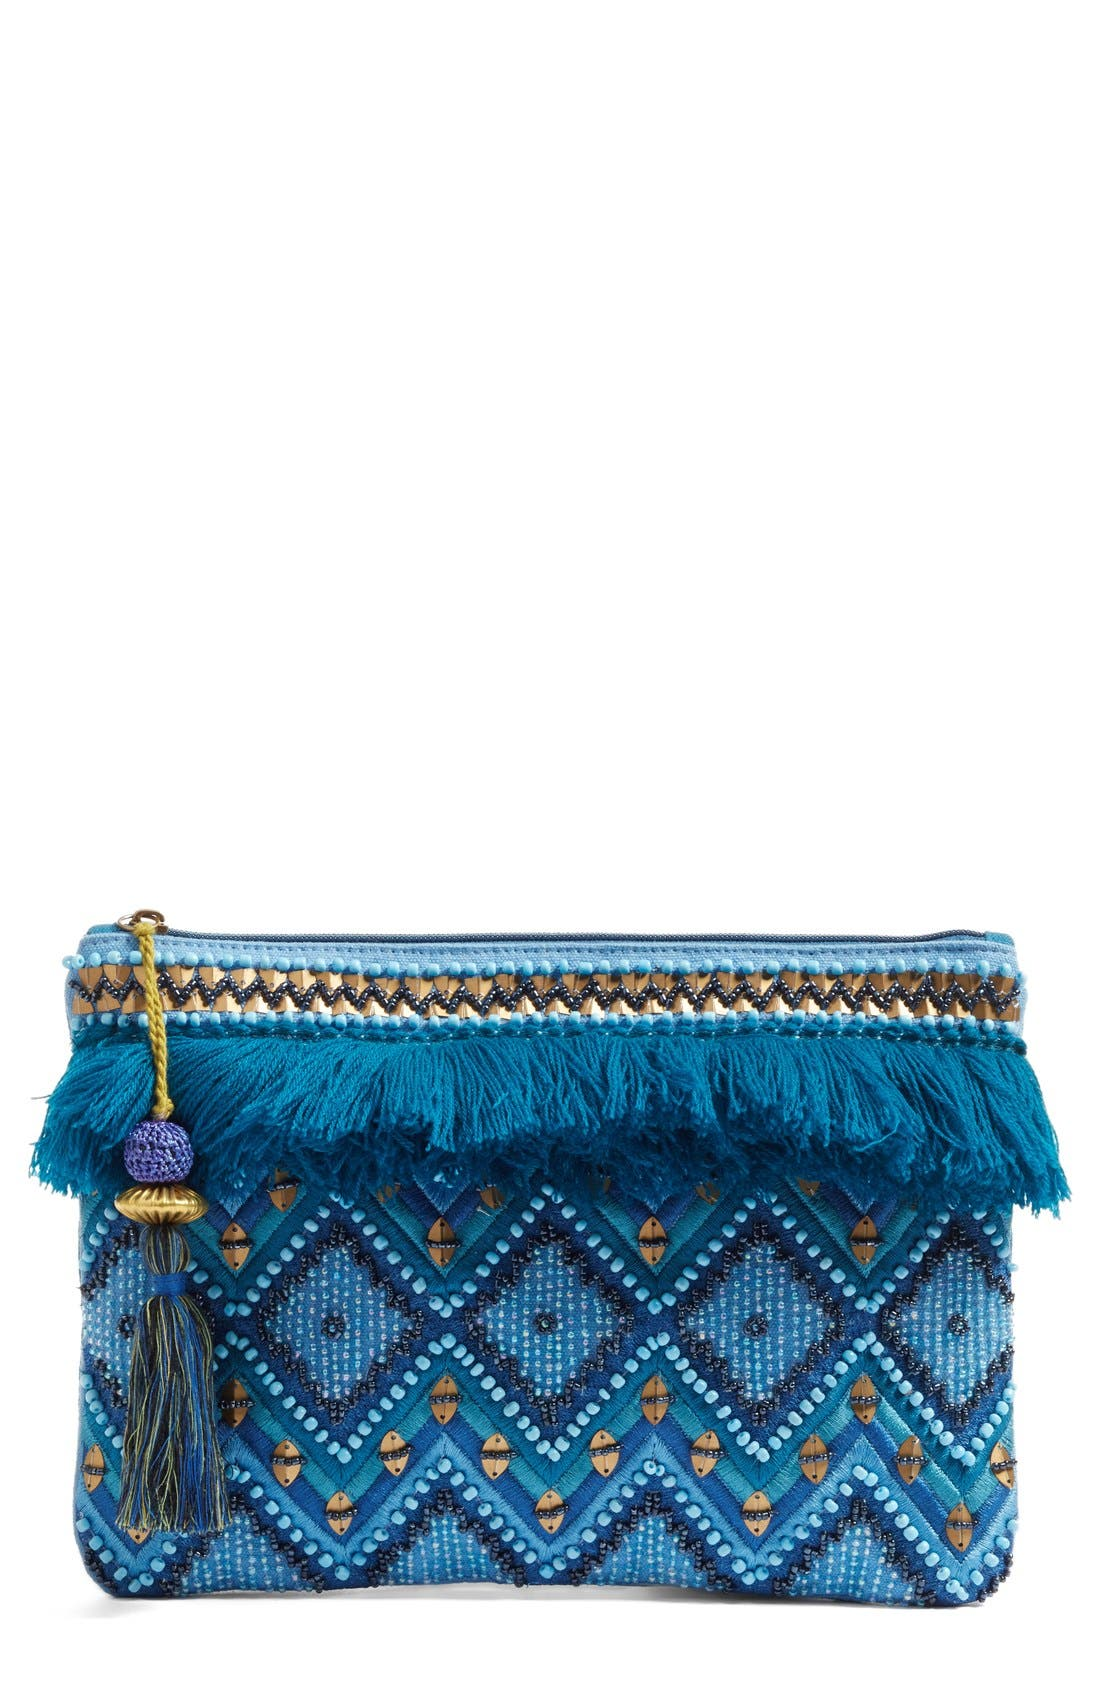 Alternate Image 1 Selected - Steven by Steve Madden Jsuzzana Fringe Clutch